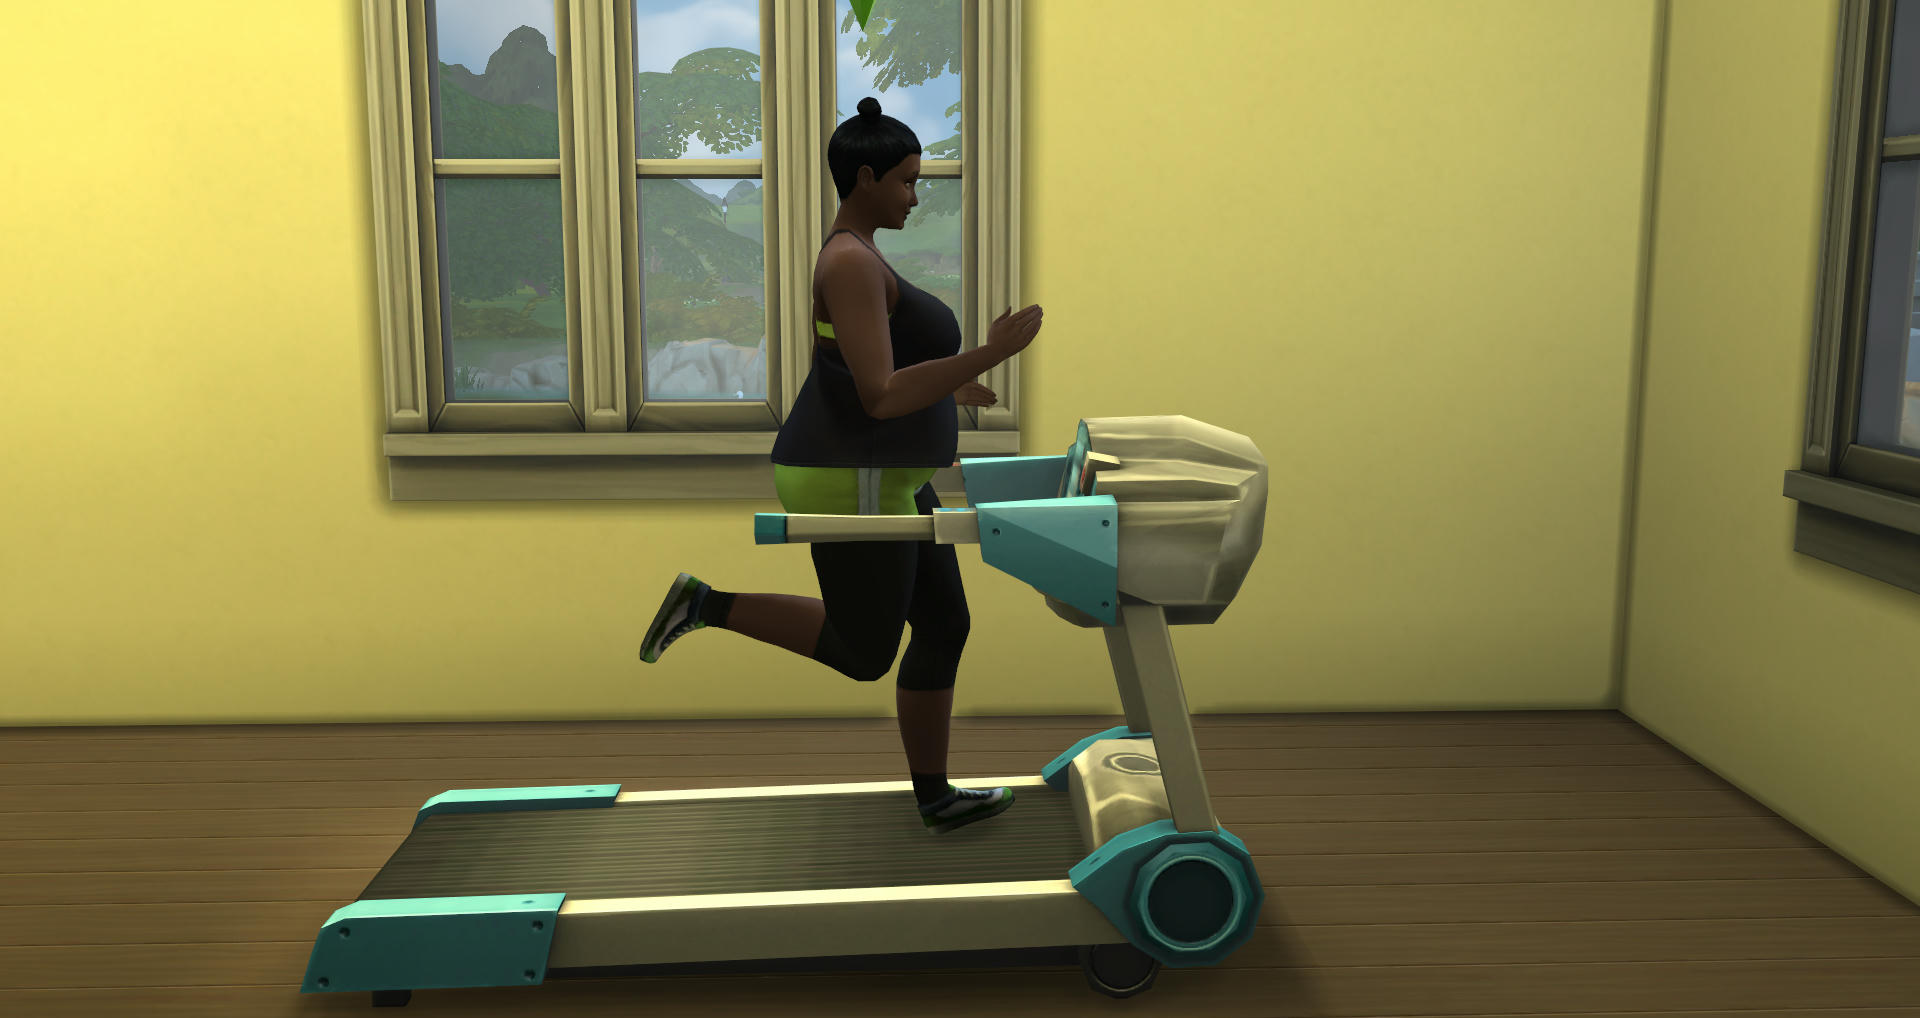 Besides, I Need To Use The Treadmill Too I Need